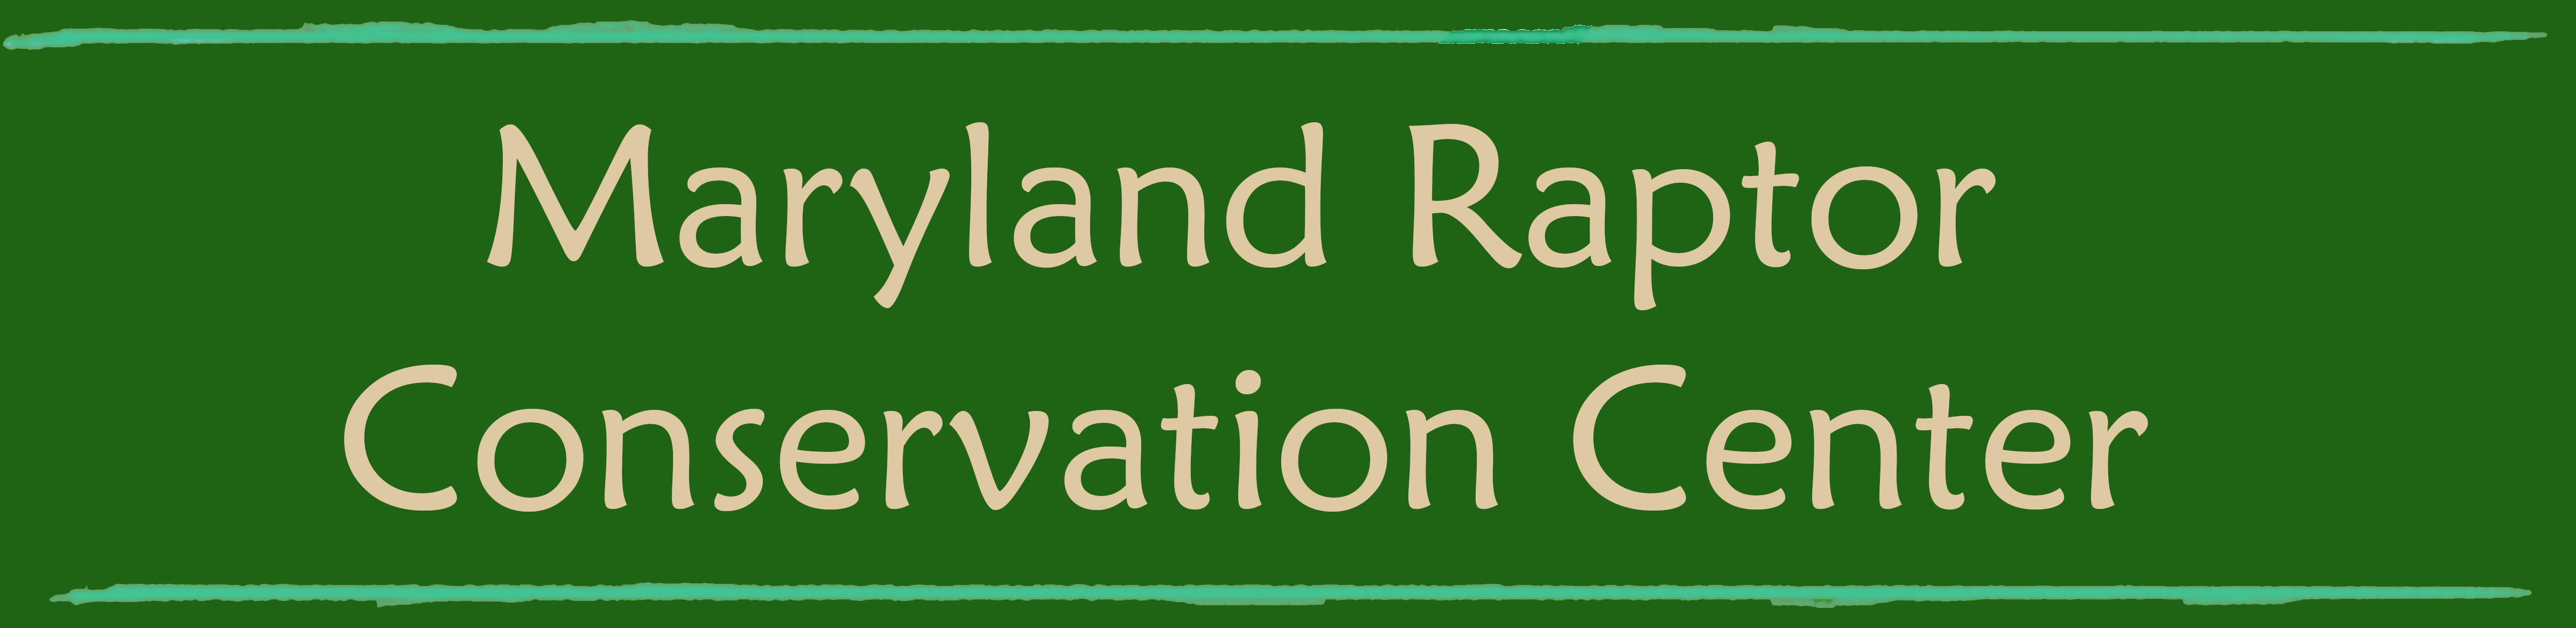 Maryland Raptor Conservation Center